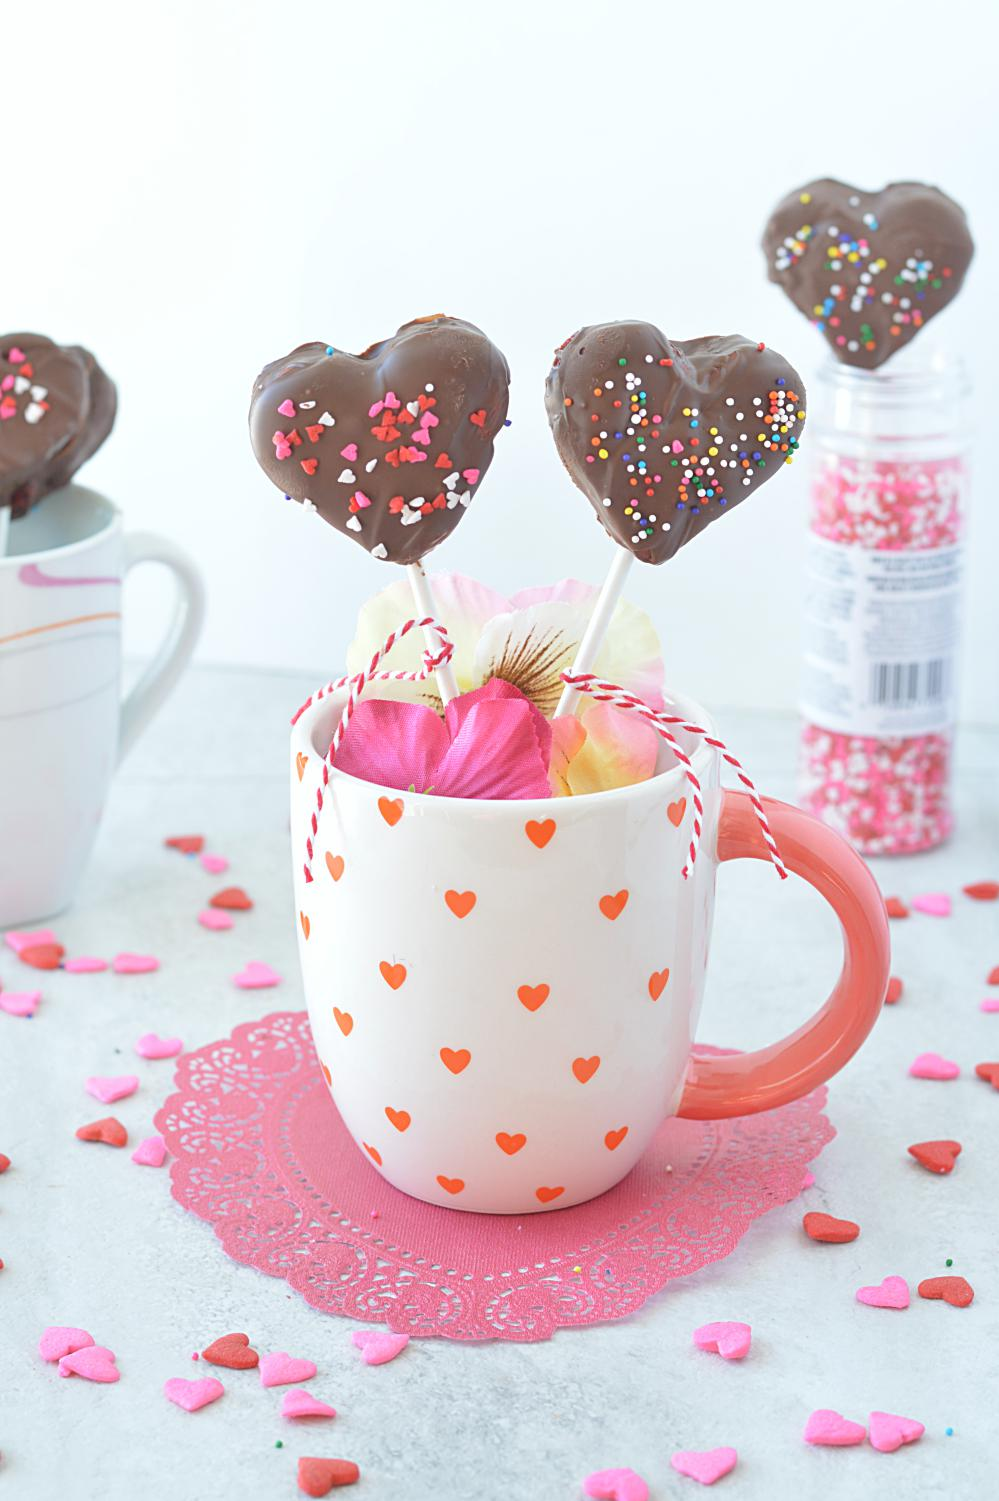 Heart Shaped Cake Lollies